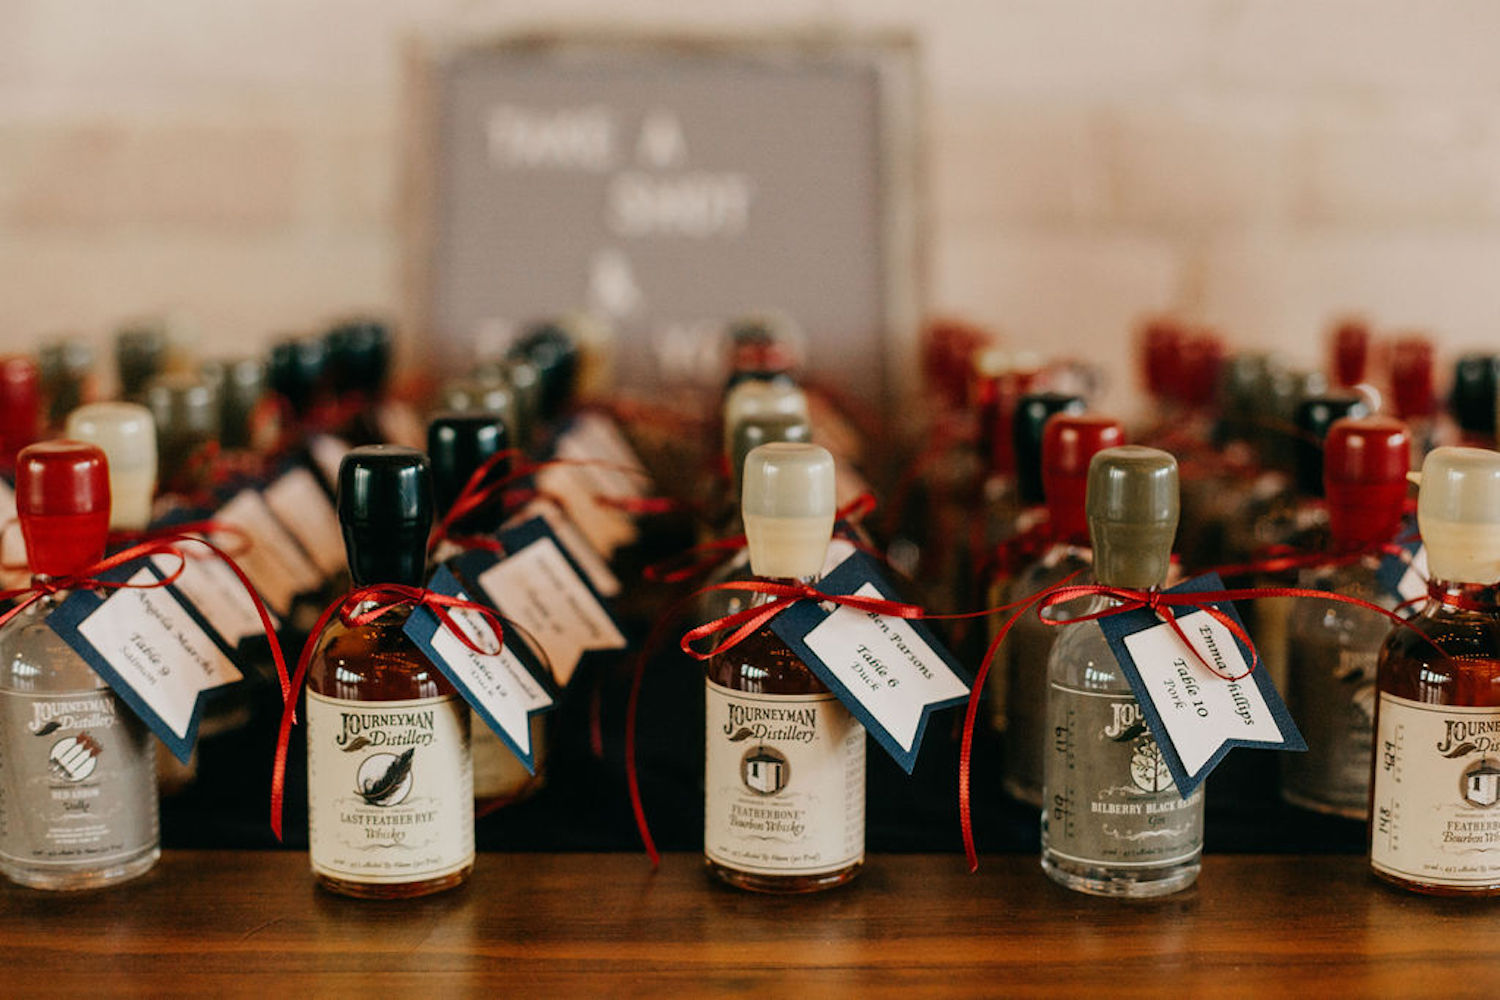 Shot bottles with name tags for Journeyman distillery wedding